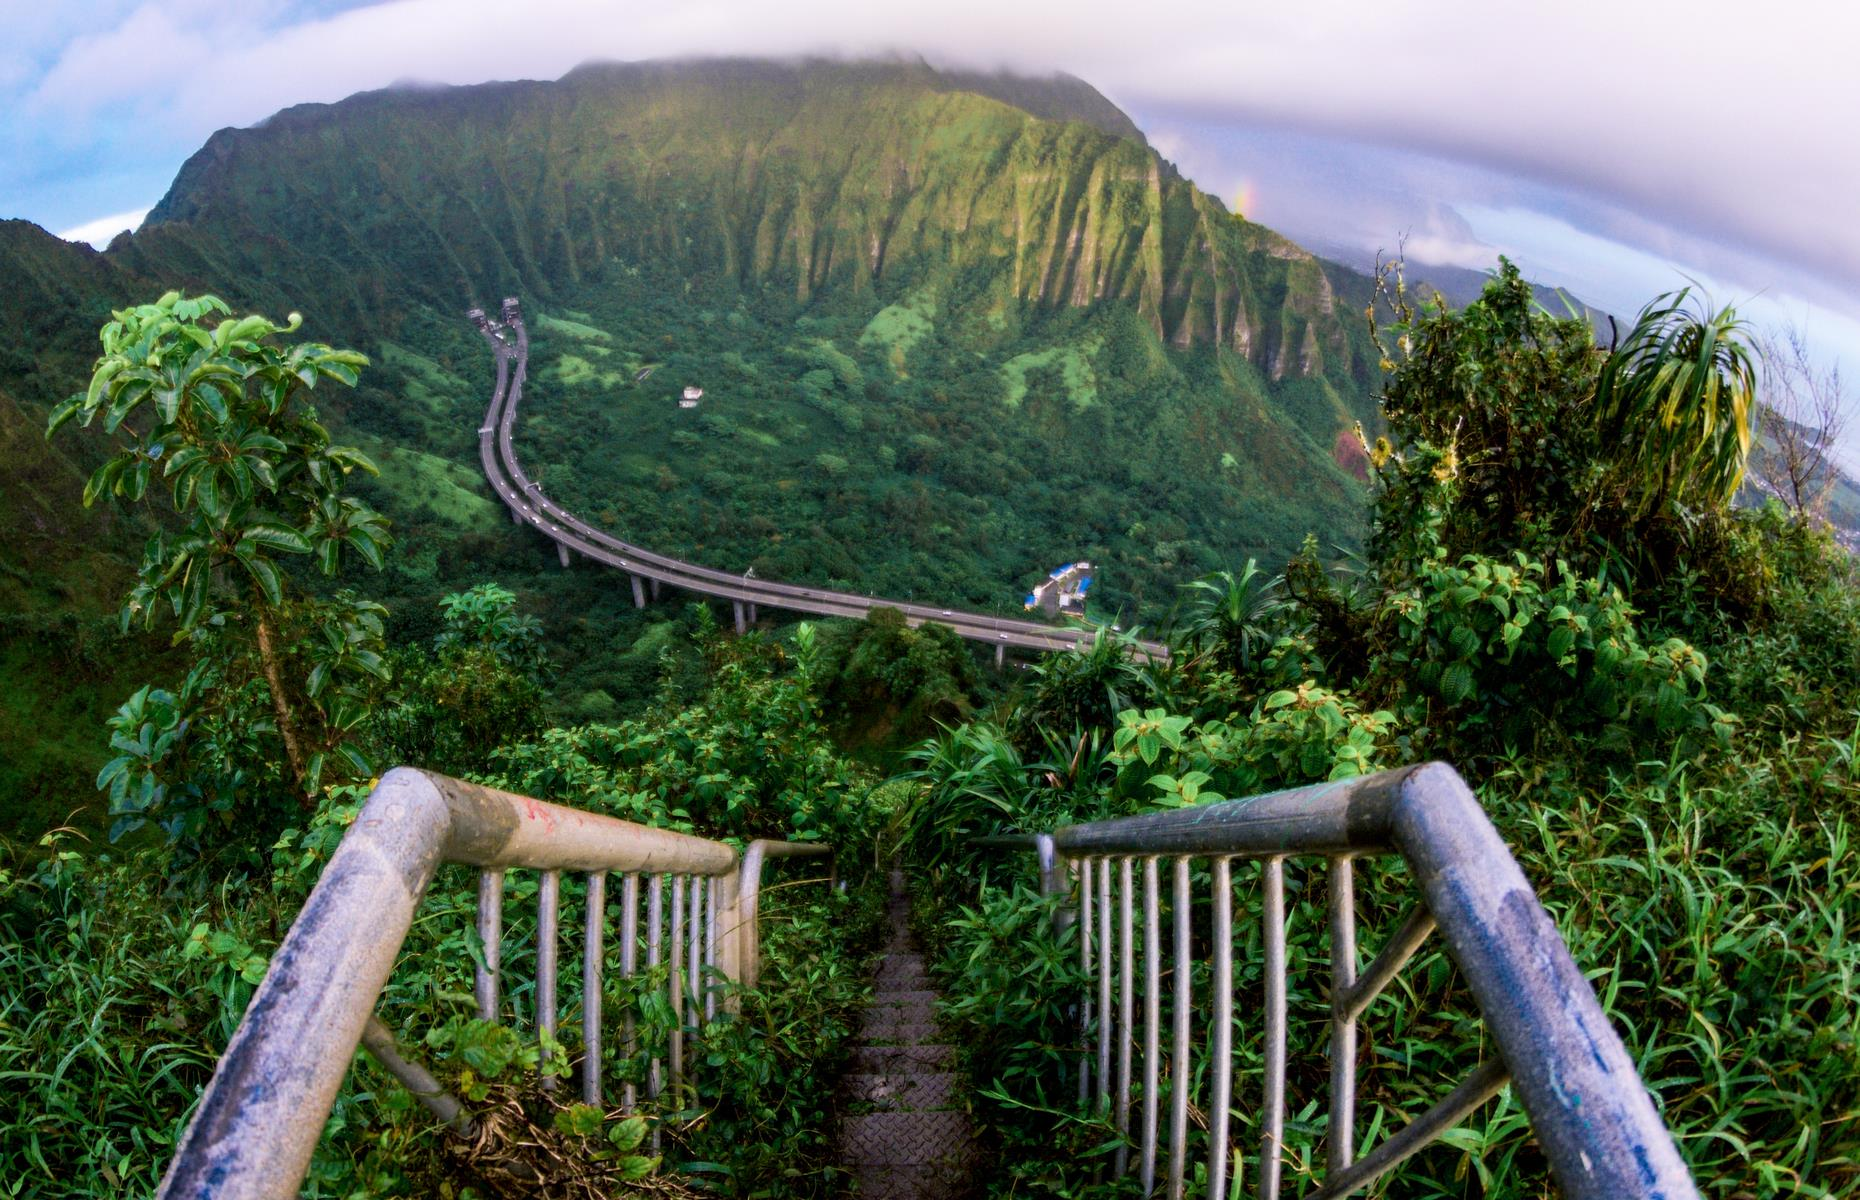 Slide 28 of 61: Nicknamed the Stairway to Heaven for good reason, this dizzying staircase lines Oahu's green Ko'olau mountains, and was built back in 1942 by the US Navy. Sadly, due to safety concerns, there are calls for the stairs to be demolished. The stairs, almost 4,000 of them, have been closed to the public for several years now and you'll face a hefty fine if you attempt to trespass on them. However, the (legal) Kulana'ahane trail, a challenging forested hike, offers decent views of the stairway while it remains.